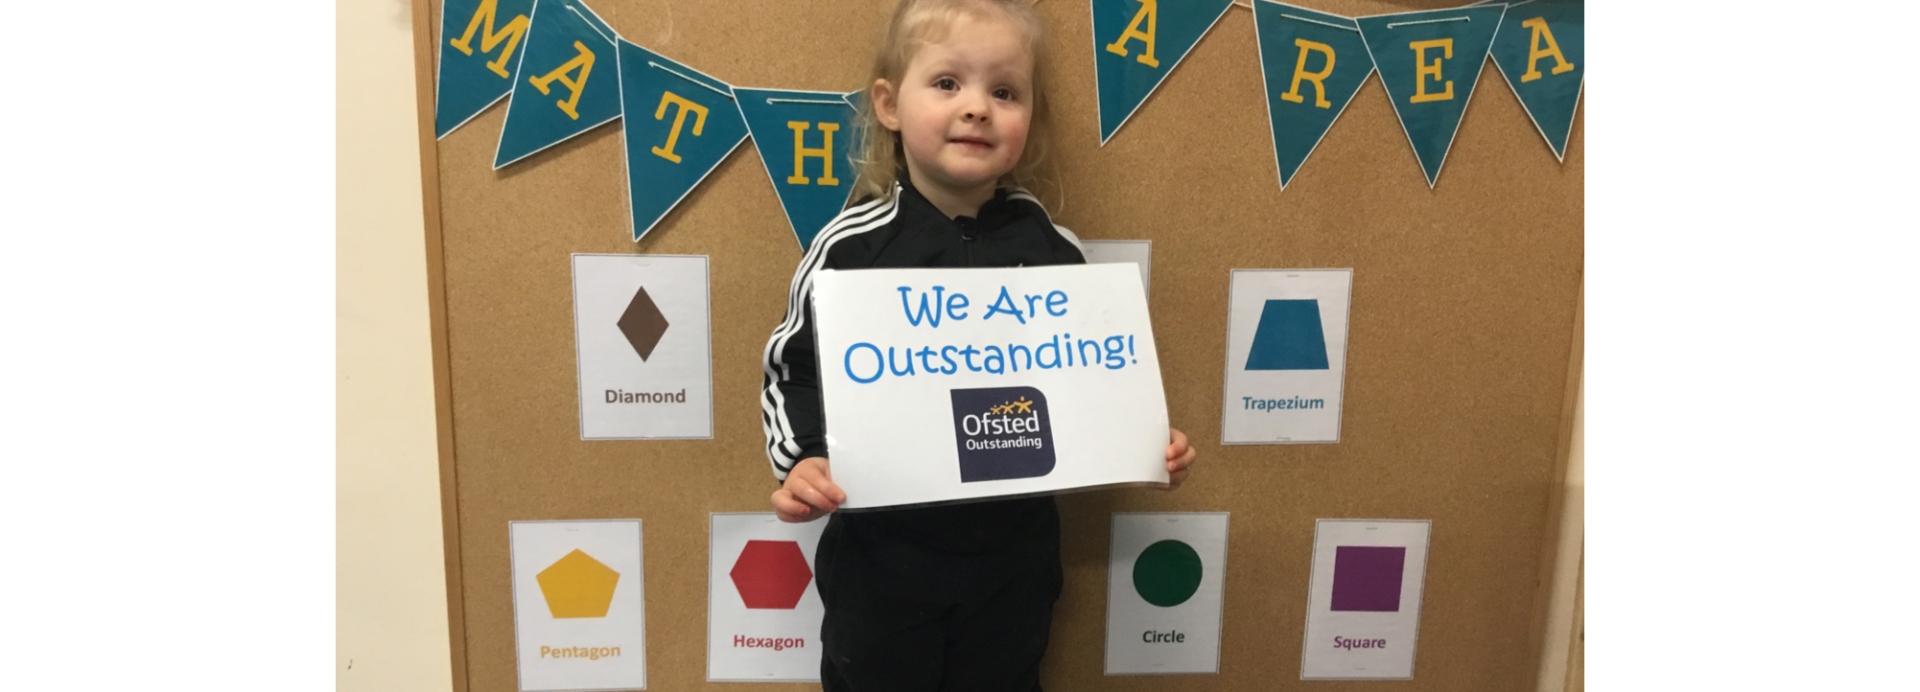 We Are Outstanding!